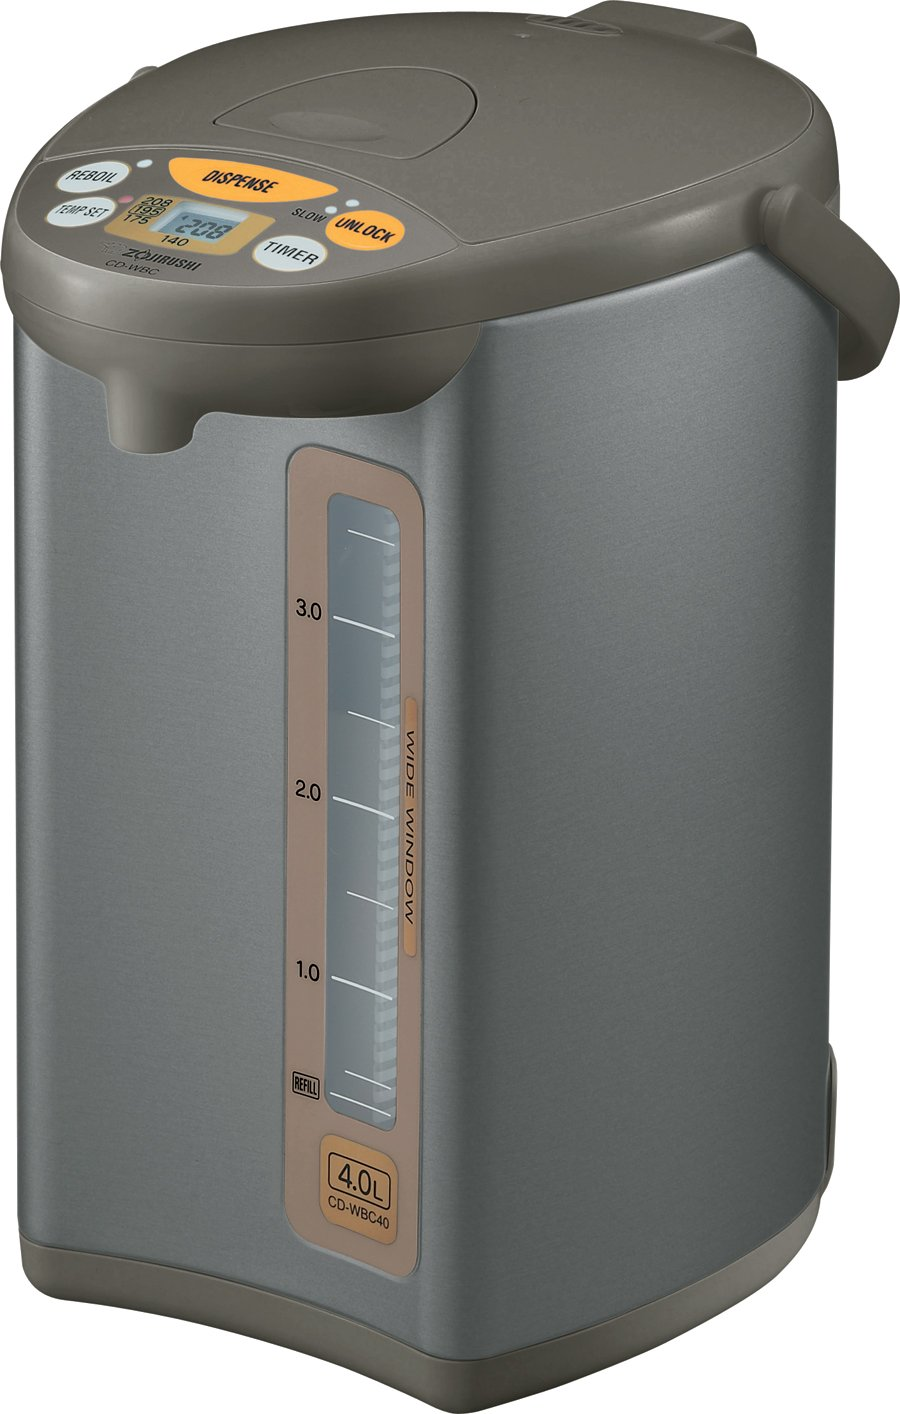 Zojirushi CD-WBC40-TS Micom 4-Liter Water Boiler and Warmer, Silver Brown by Zojirushi